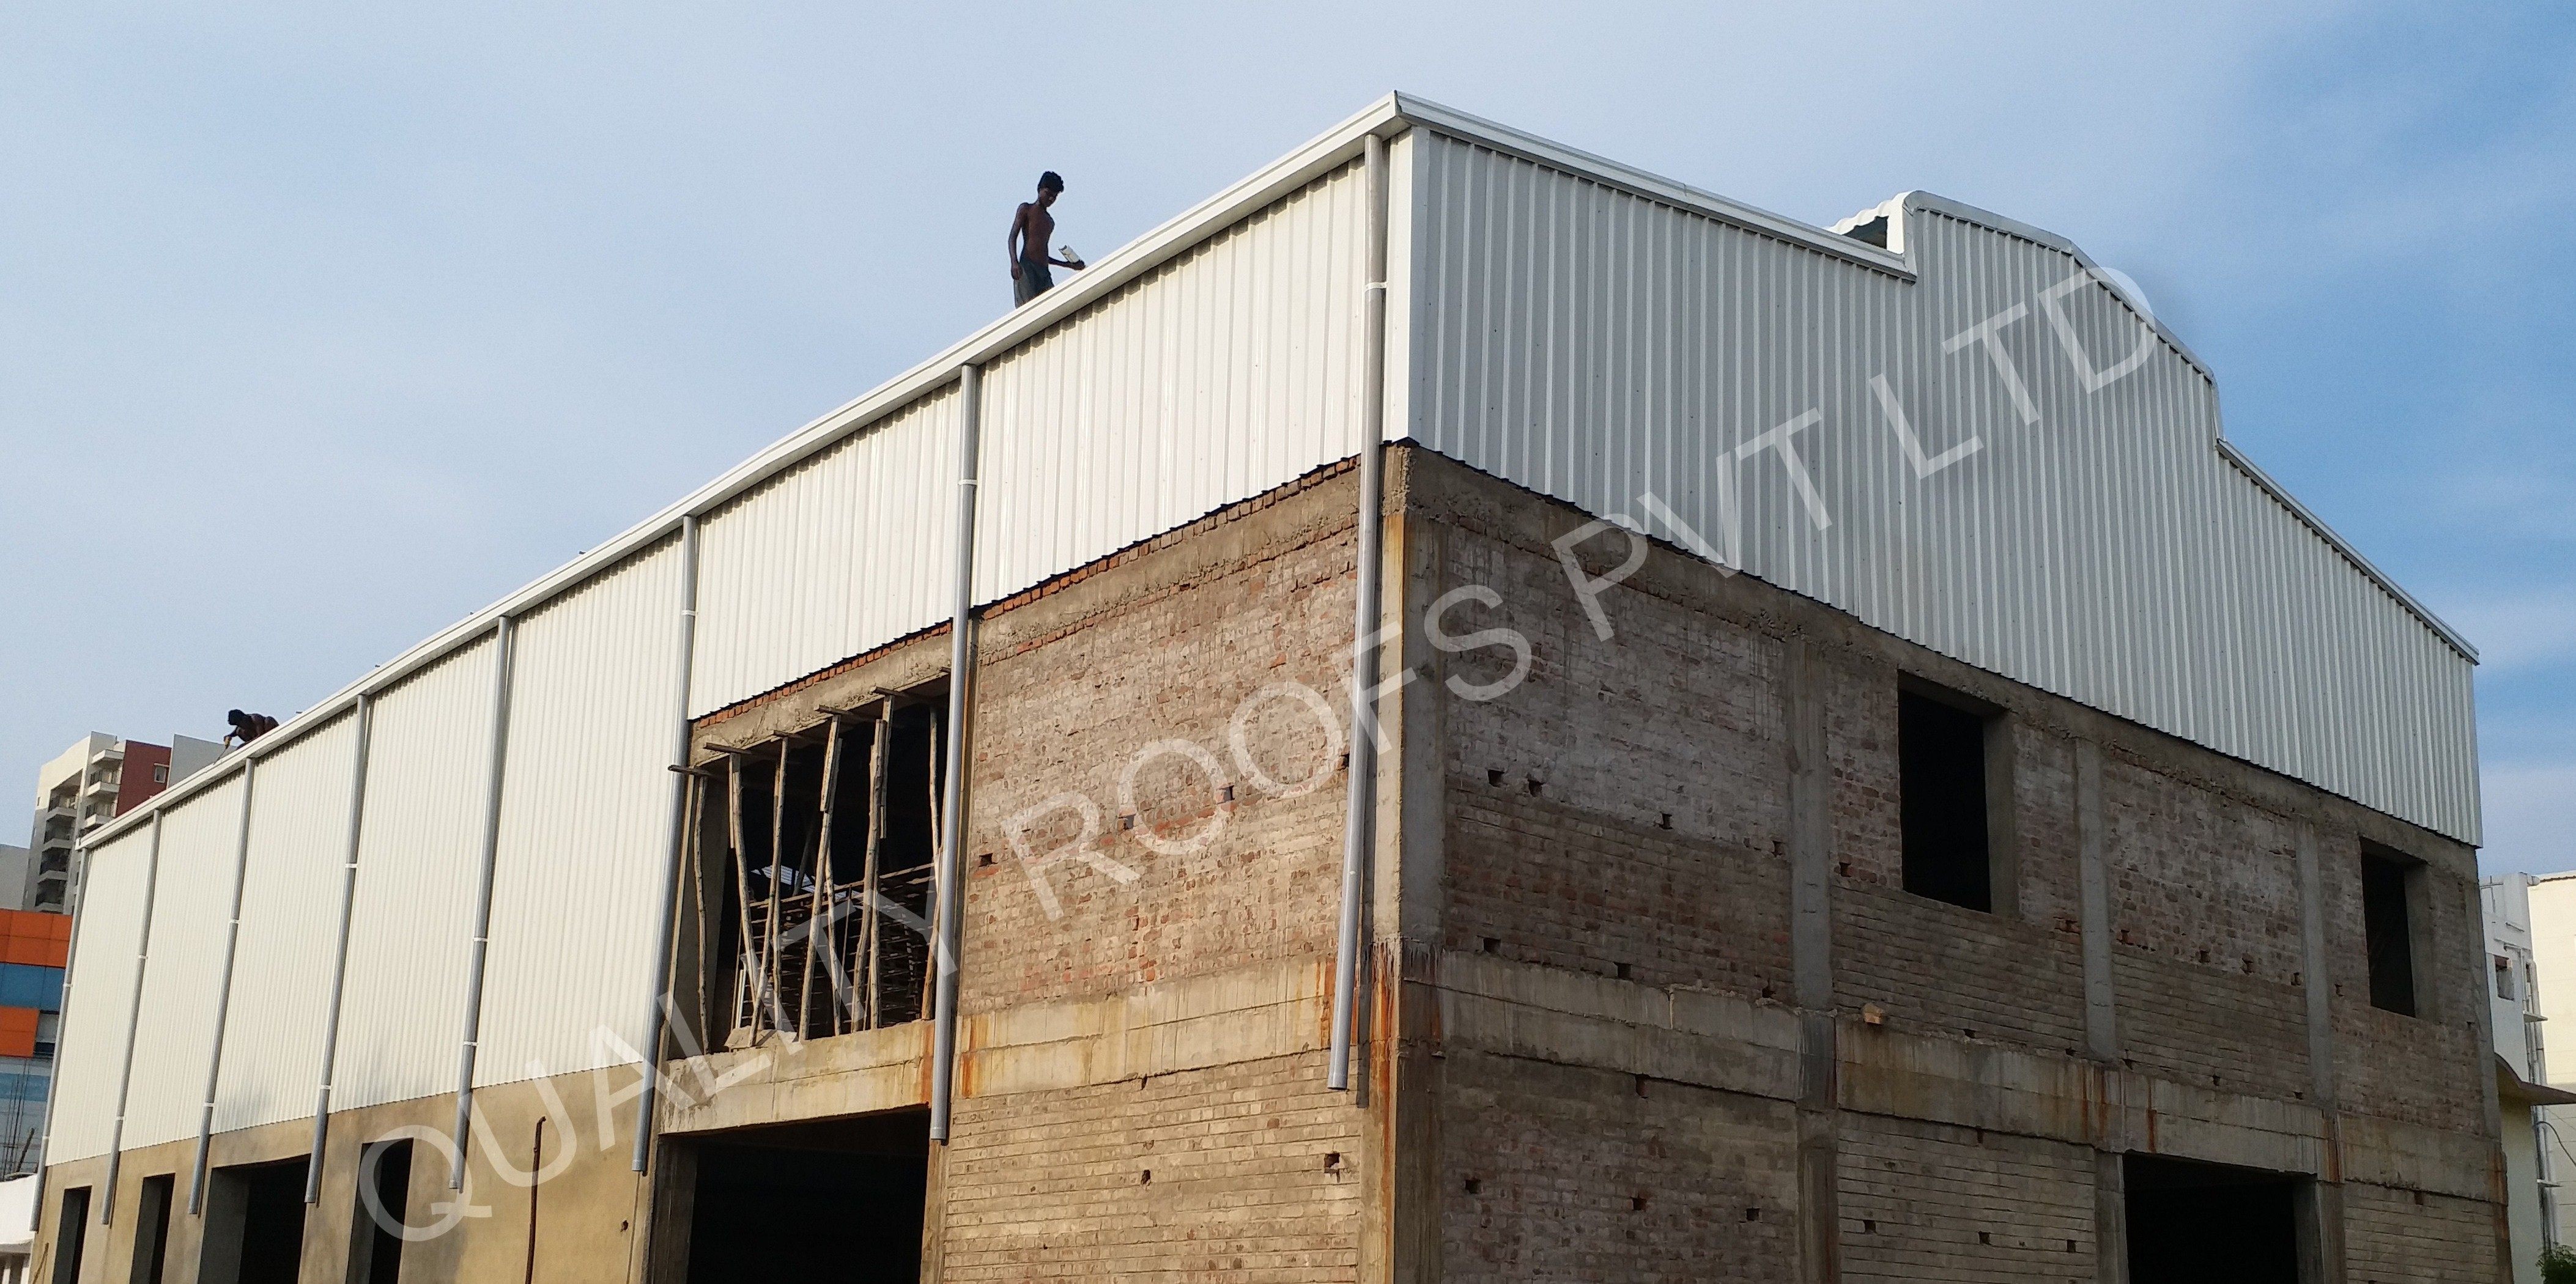 Factory Shed Construction In Chennai | Quality Roofs Pvt Ltd | Factory Shed Construction In Chennai, Industrial Shed Contractors In Chennai, Blue Sheet Roofing Work In Chennai, Roofing Services In Chennai, Polycarbonate Shed Contractors in Chennai - GL57071